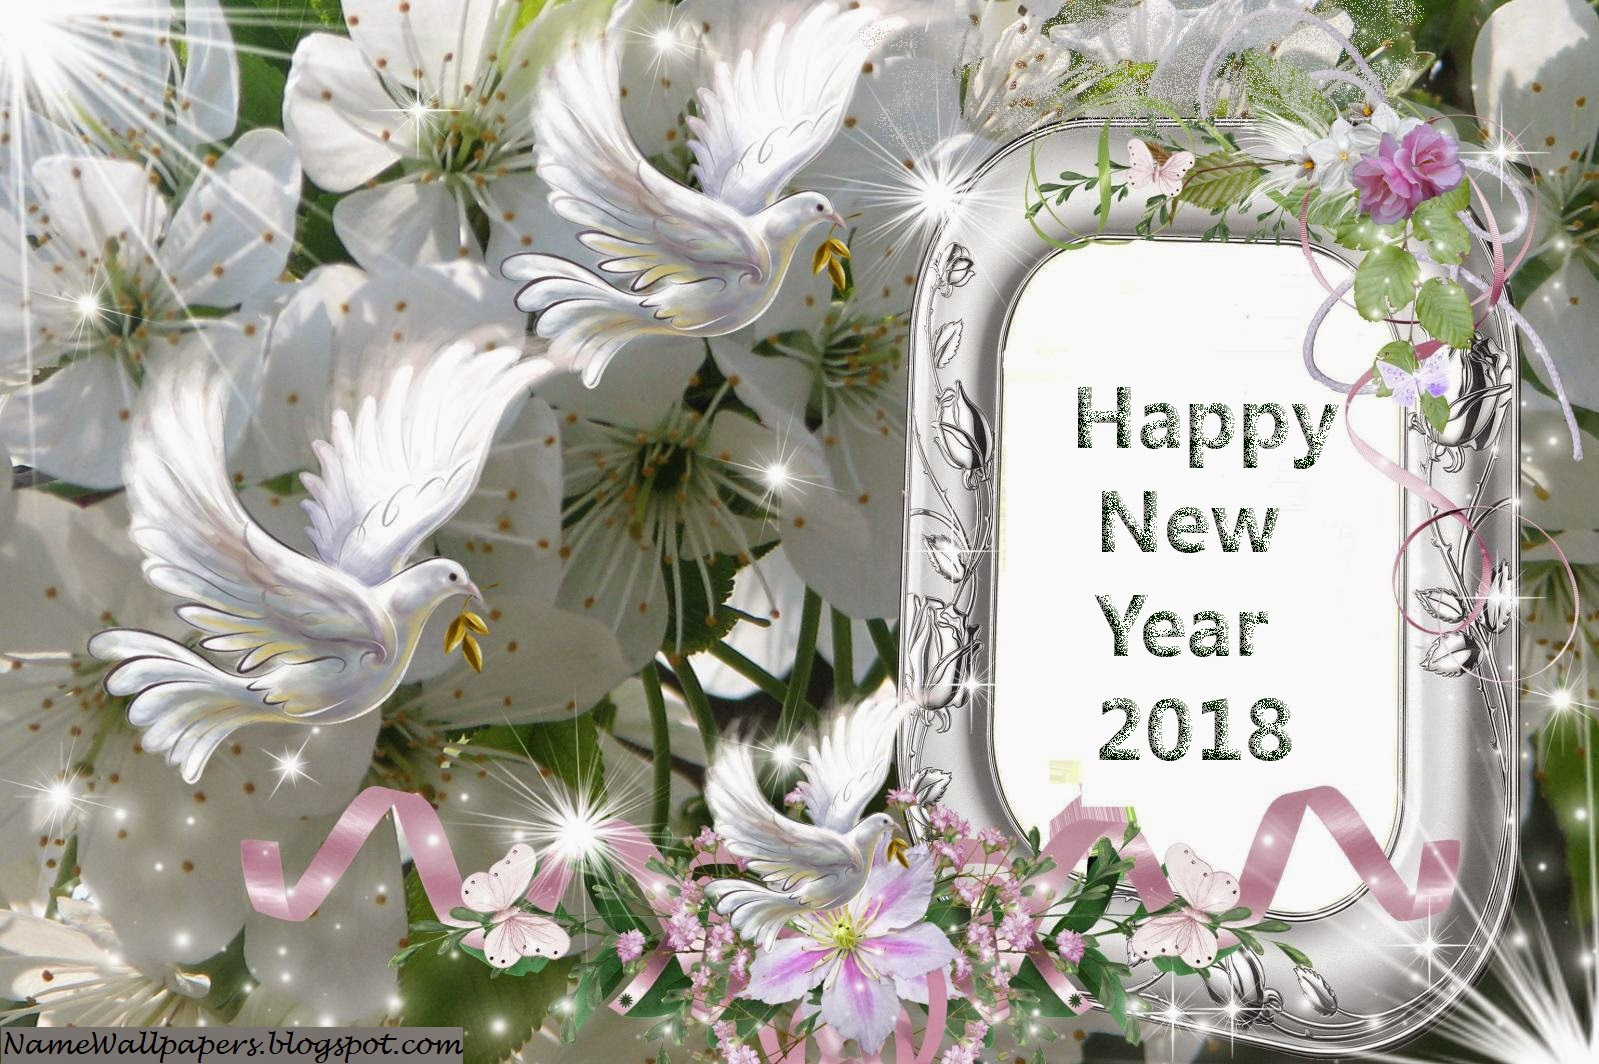 Happy New Year 2018 Wallpapers HD Images Pictures 2018 ~ Happy New Year 2018 ...